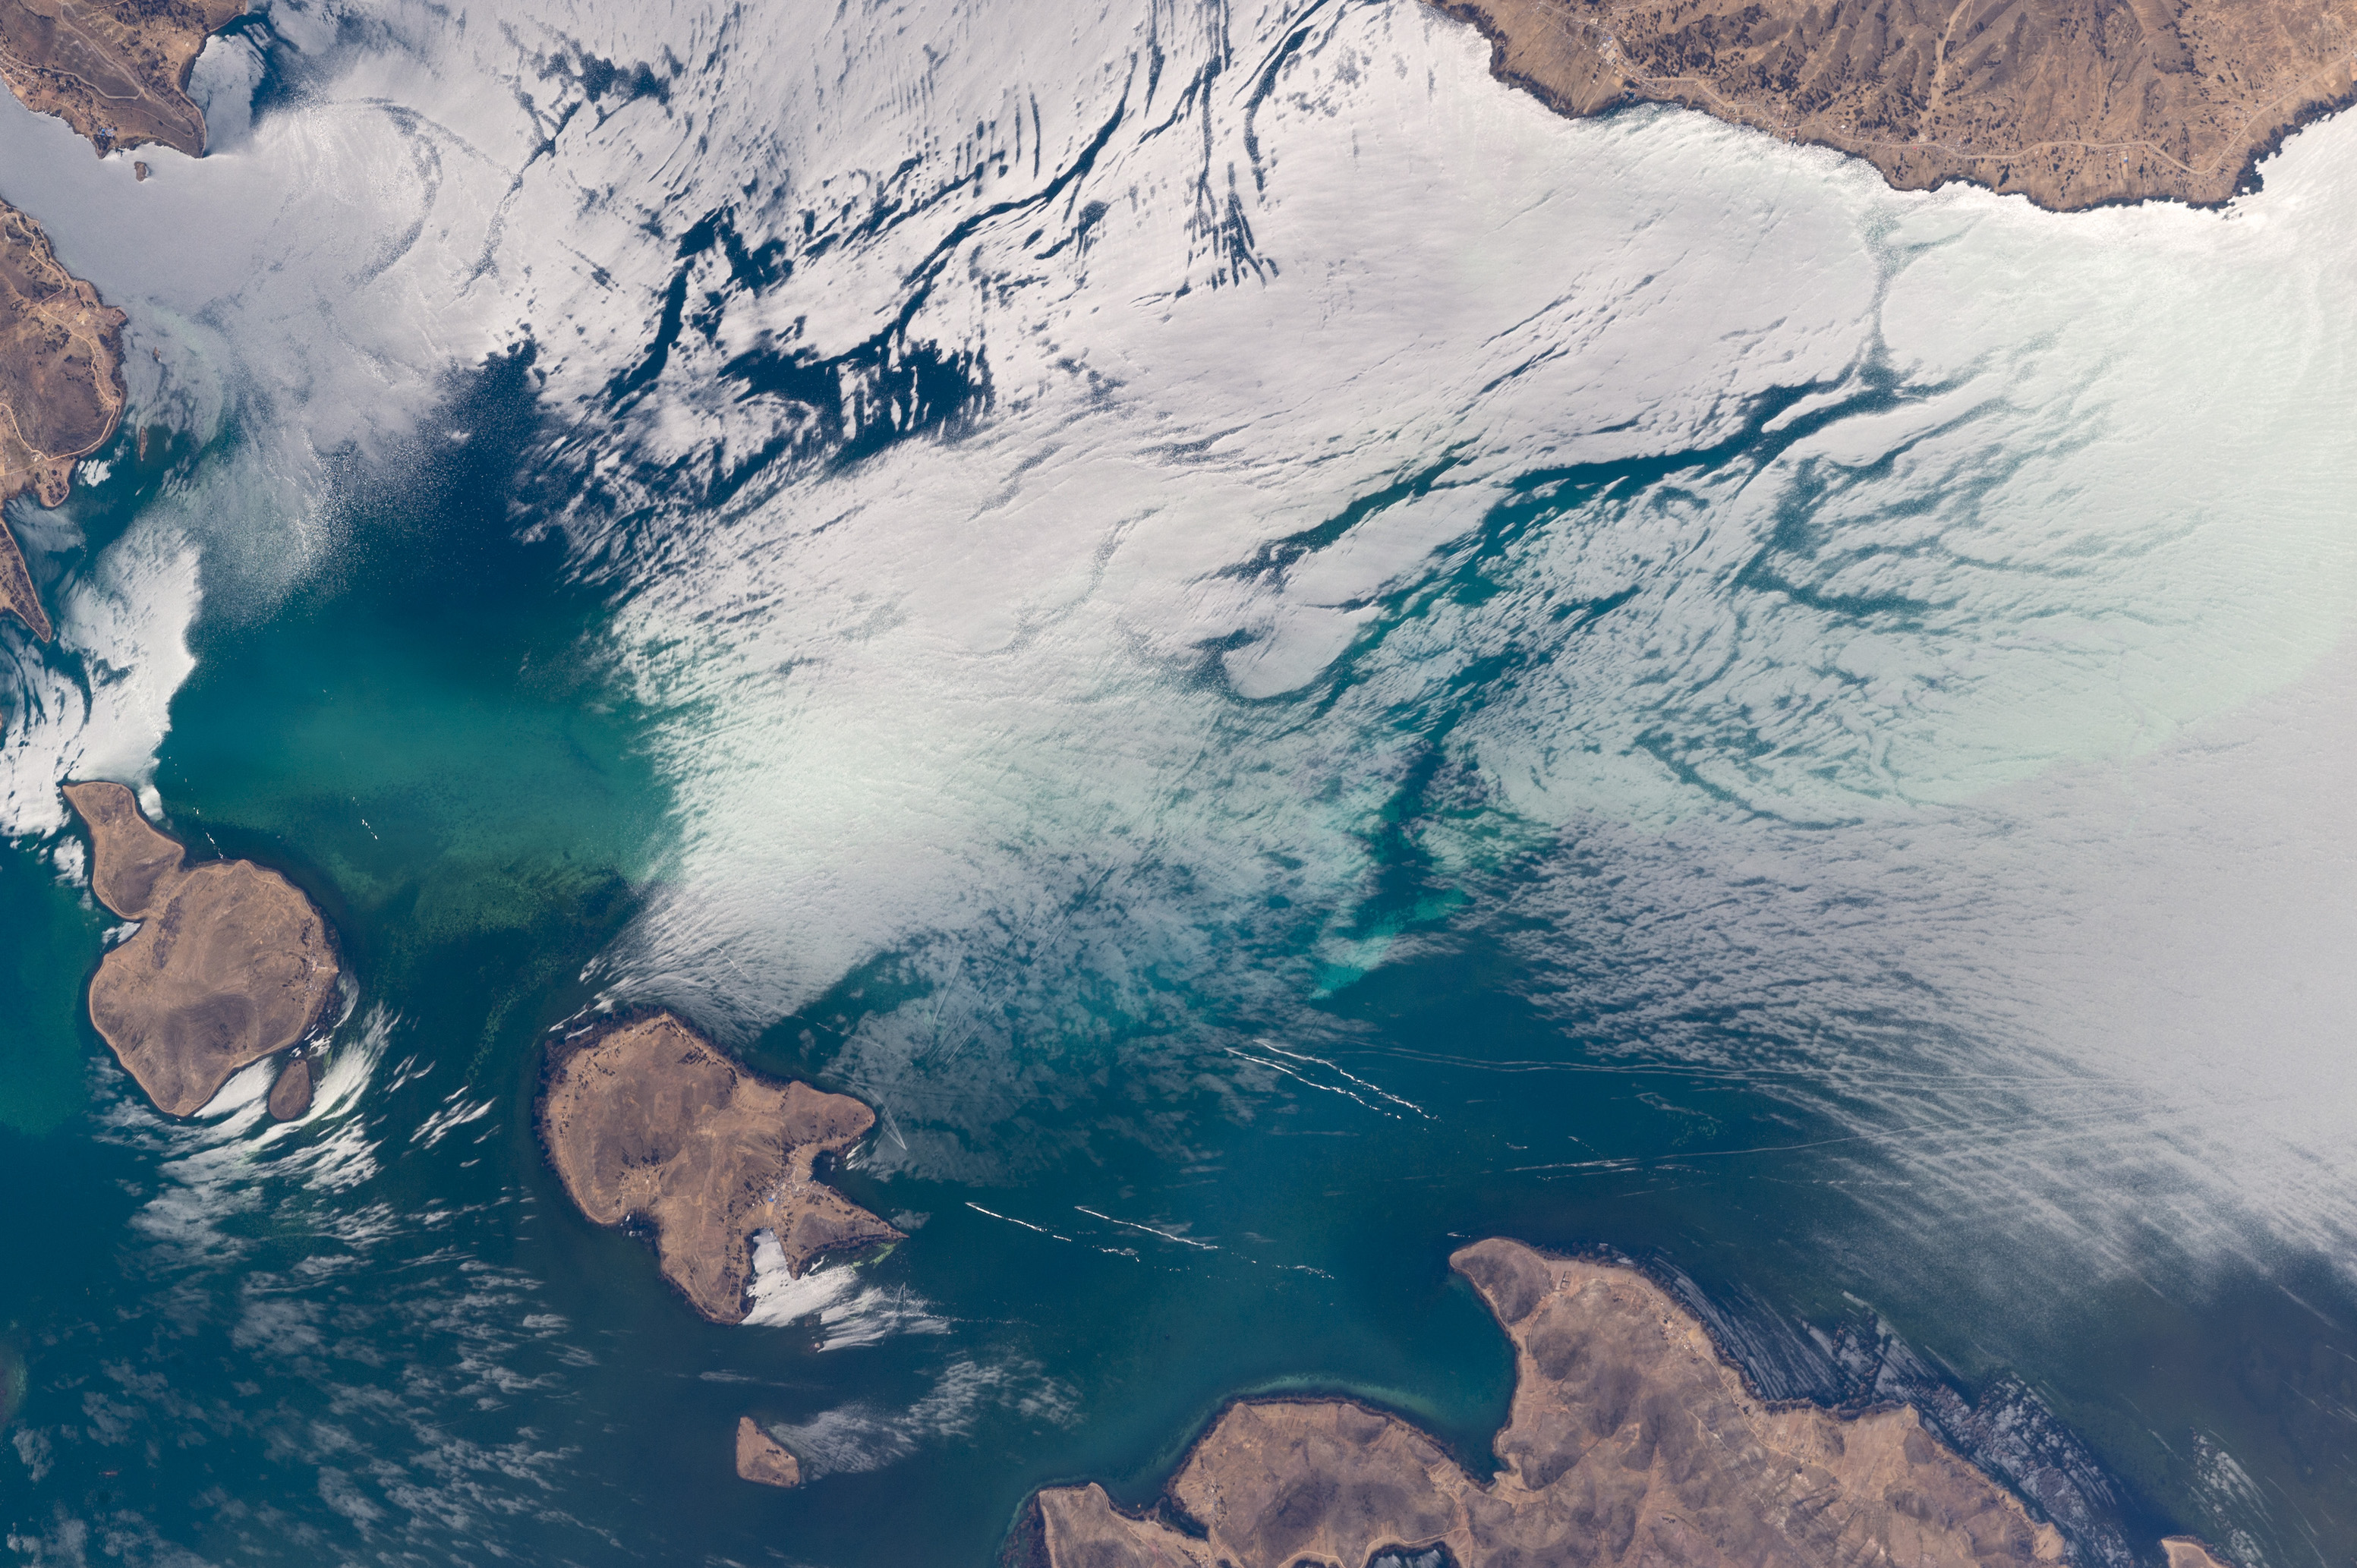 Today's Image of the Day comes thanks to the NASA Earth Observatory and features a look at sunglint on Lake Titicaca in the Andes Mountains.